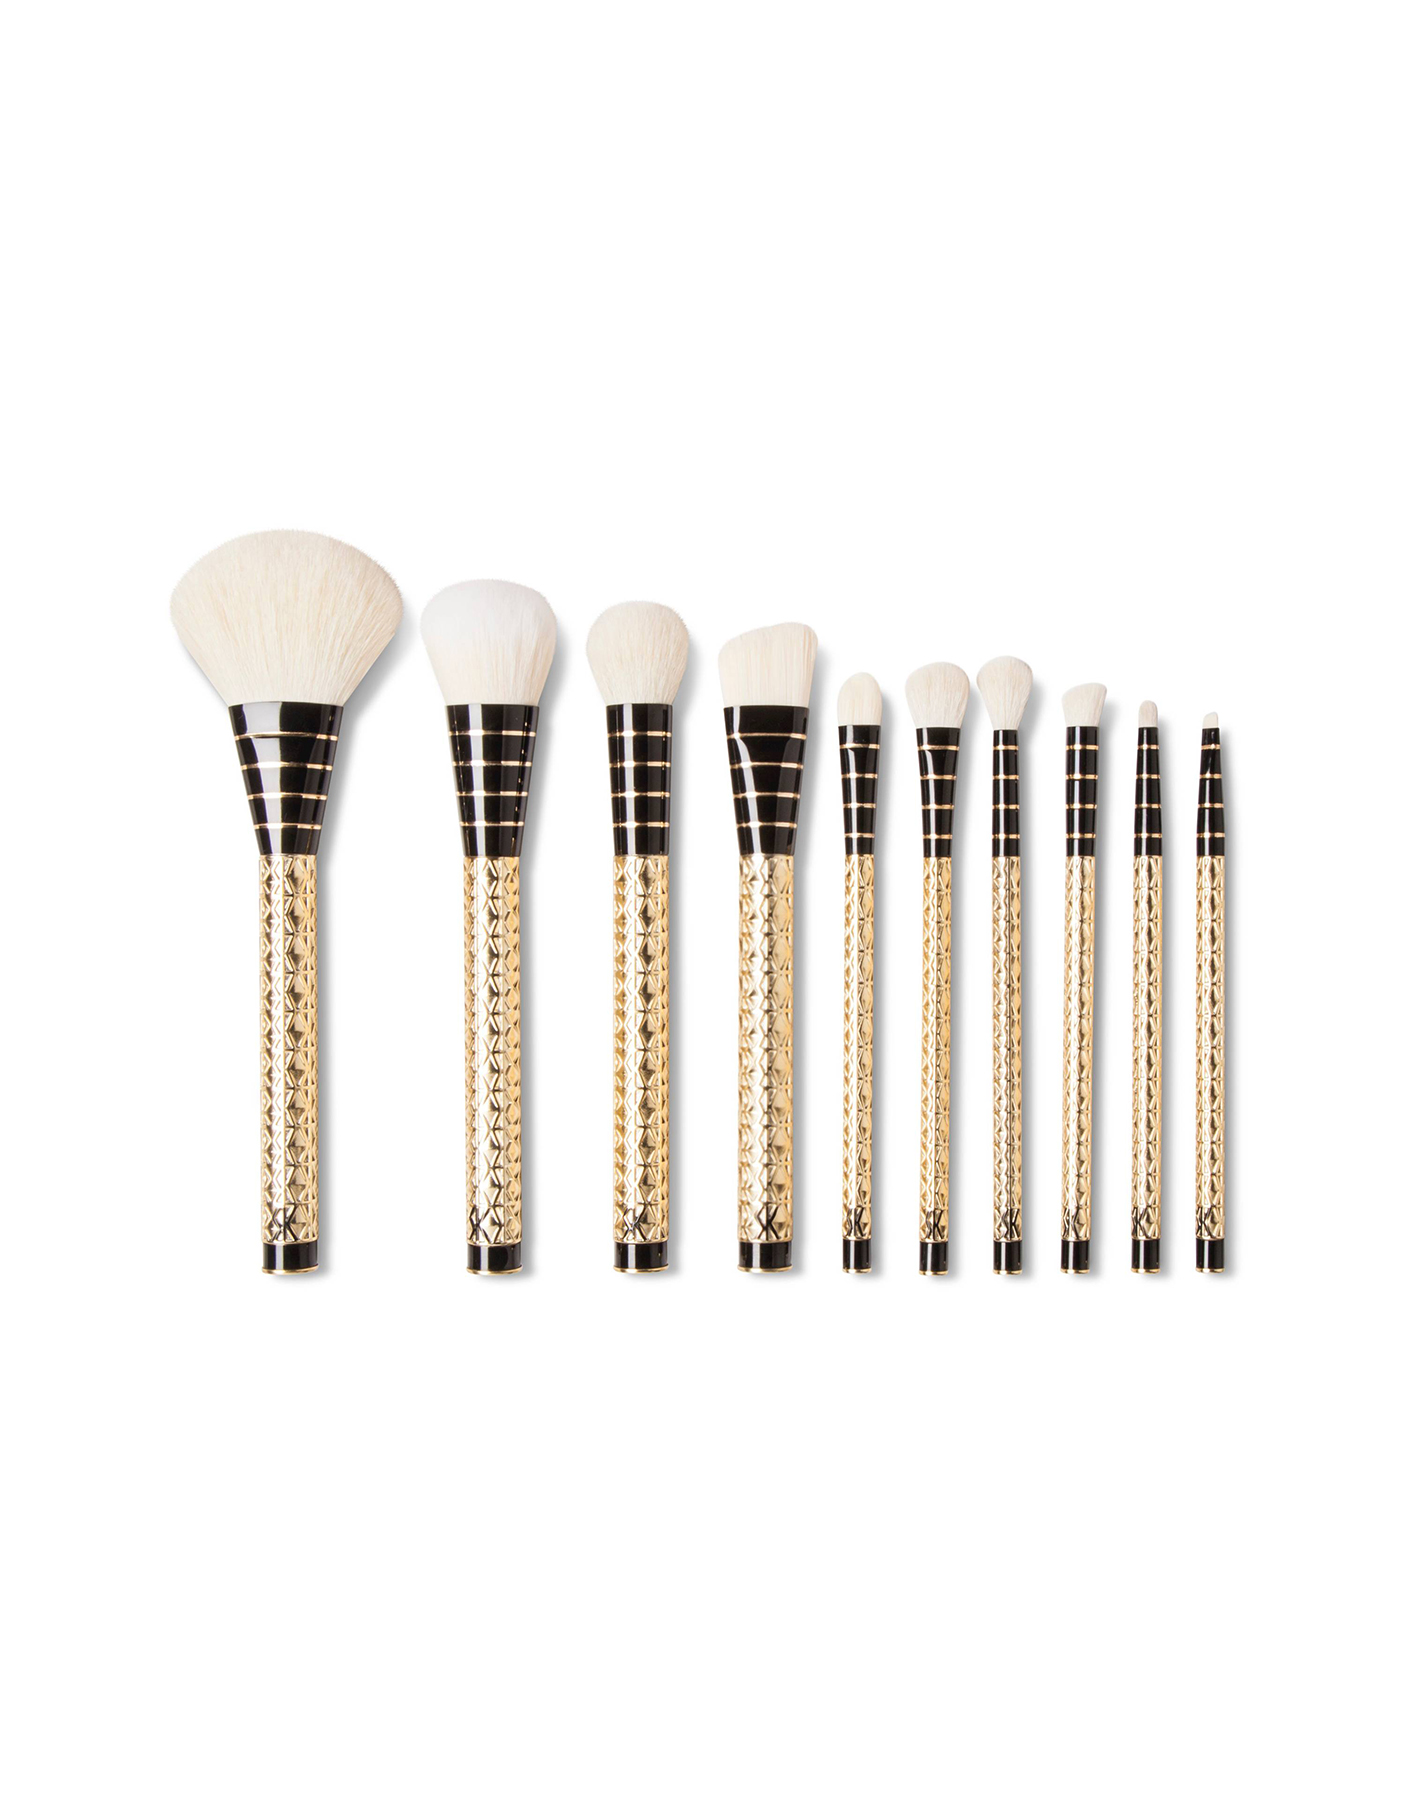 Sonia Kashuk Limited Edition 10-Piece Brush Set